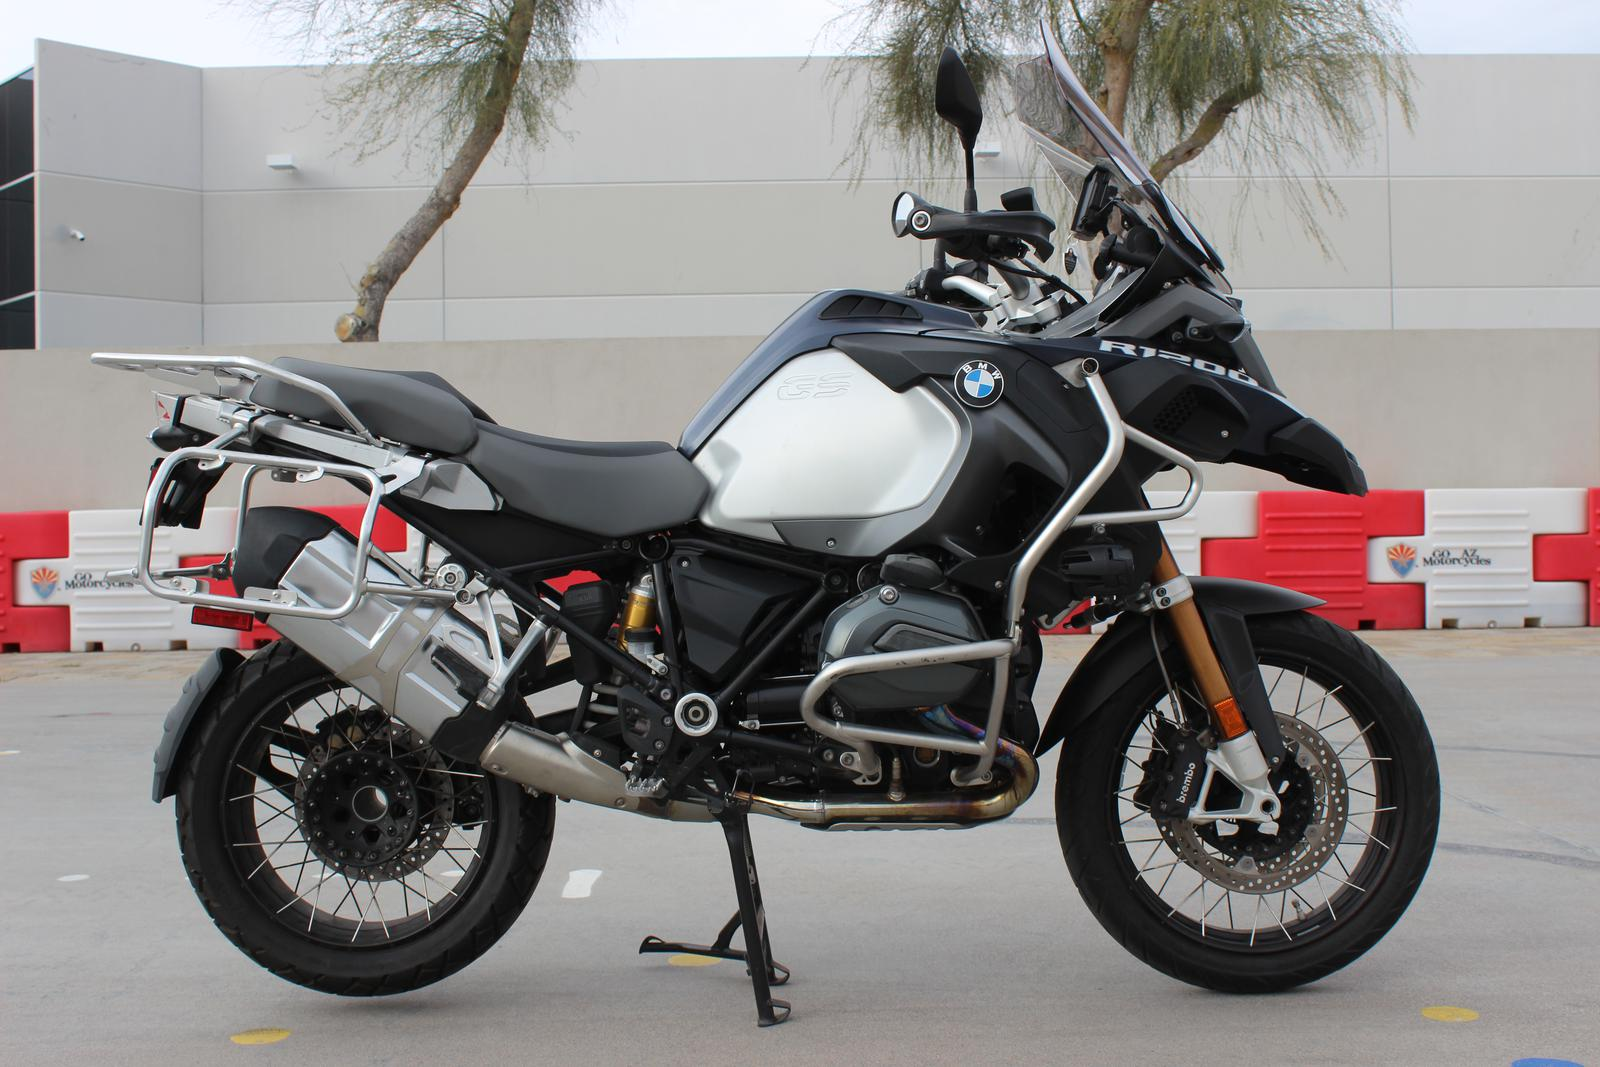 2016 Bmw R1200gs Adventure For In Scottsdale Az Go Motorcycles 480 609 1800